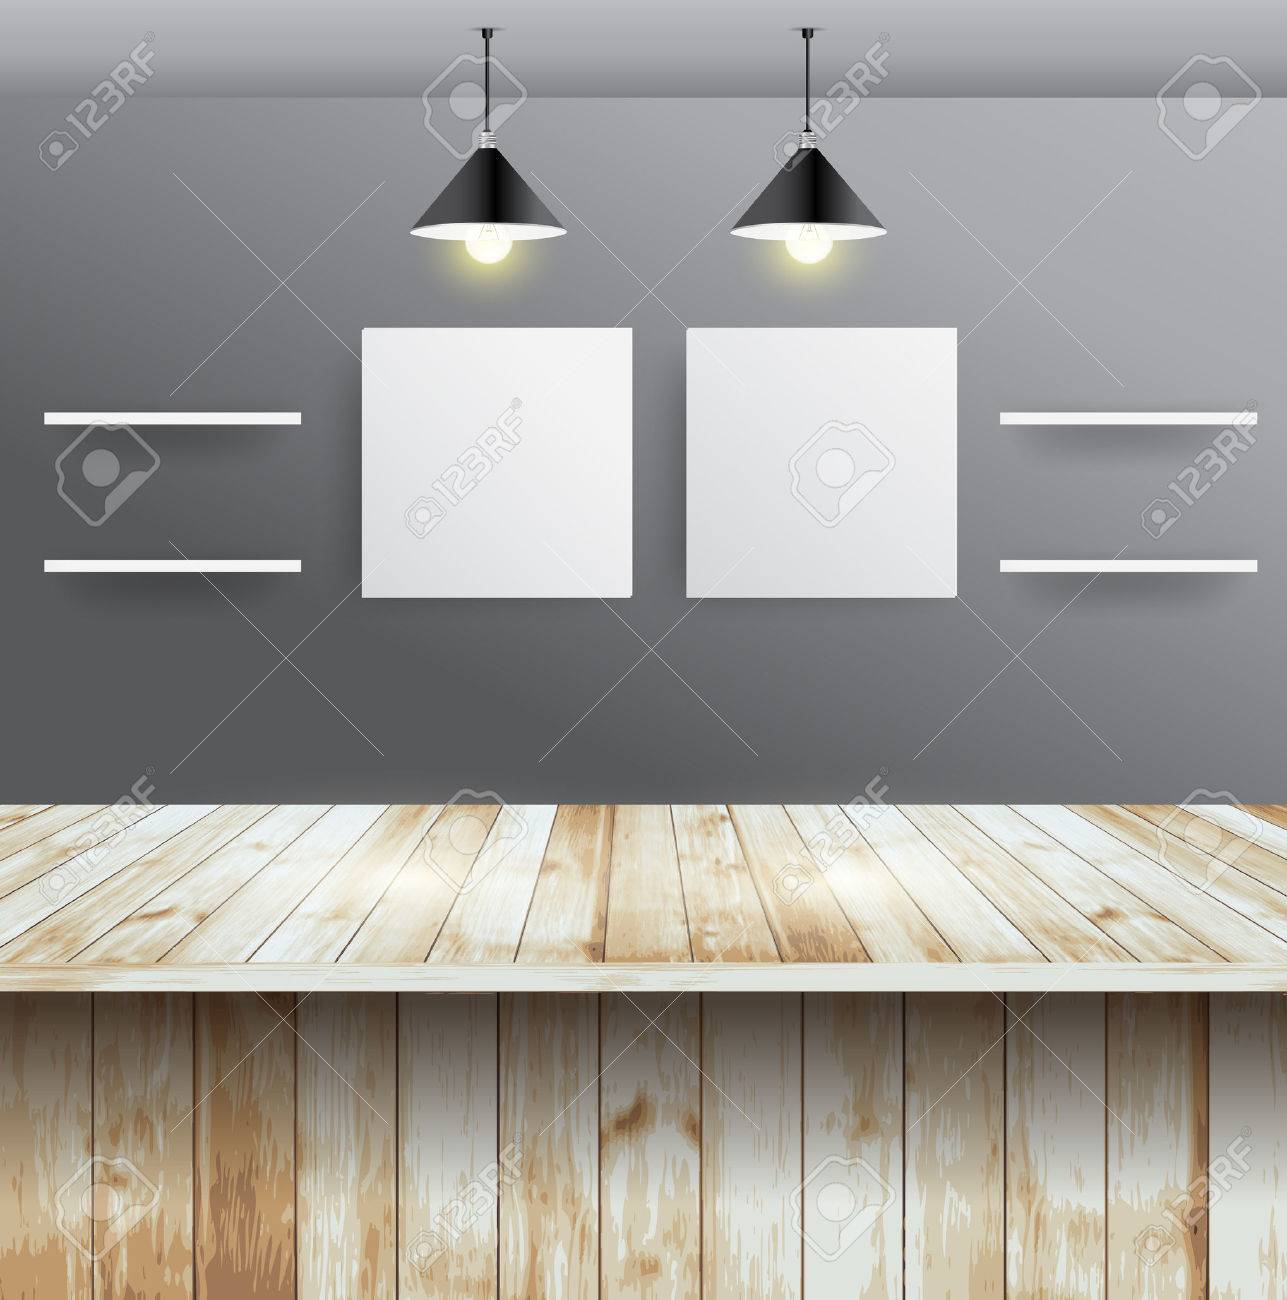 Interior wooden shelves free vector - Wood Table With Wall Room Interior Design Vector Illustration Modern Template Design Stock Vector